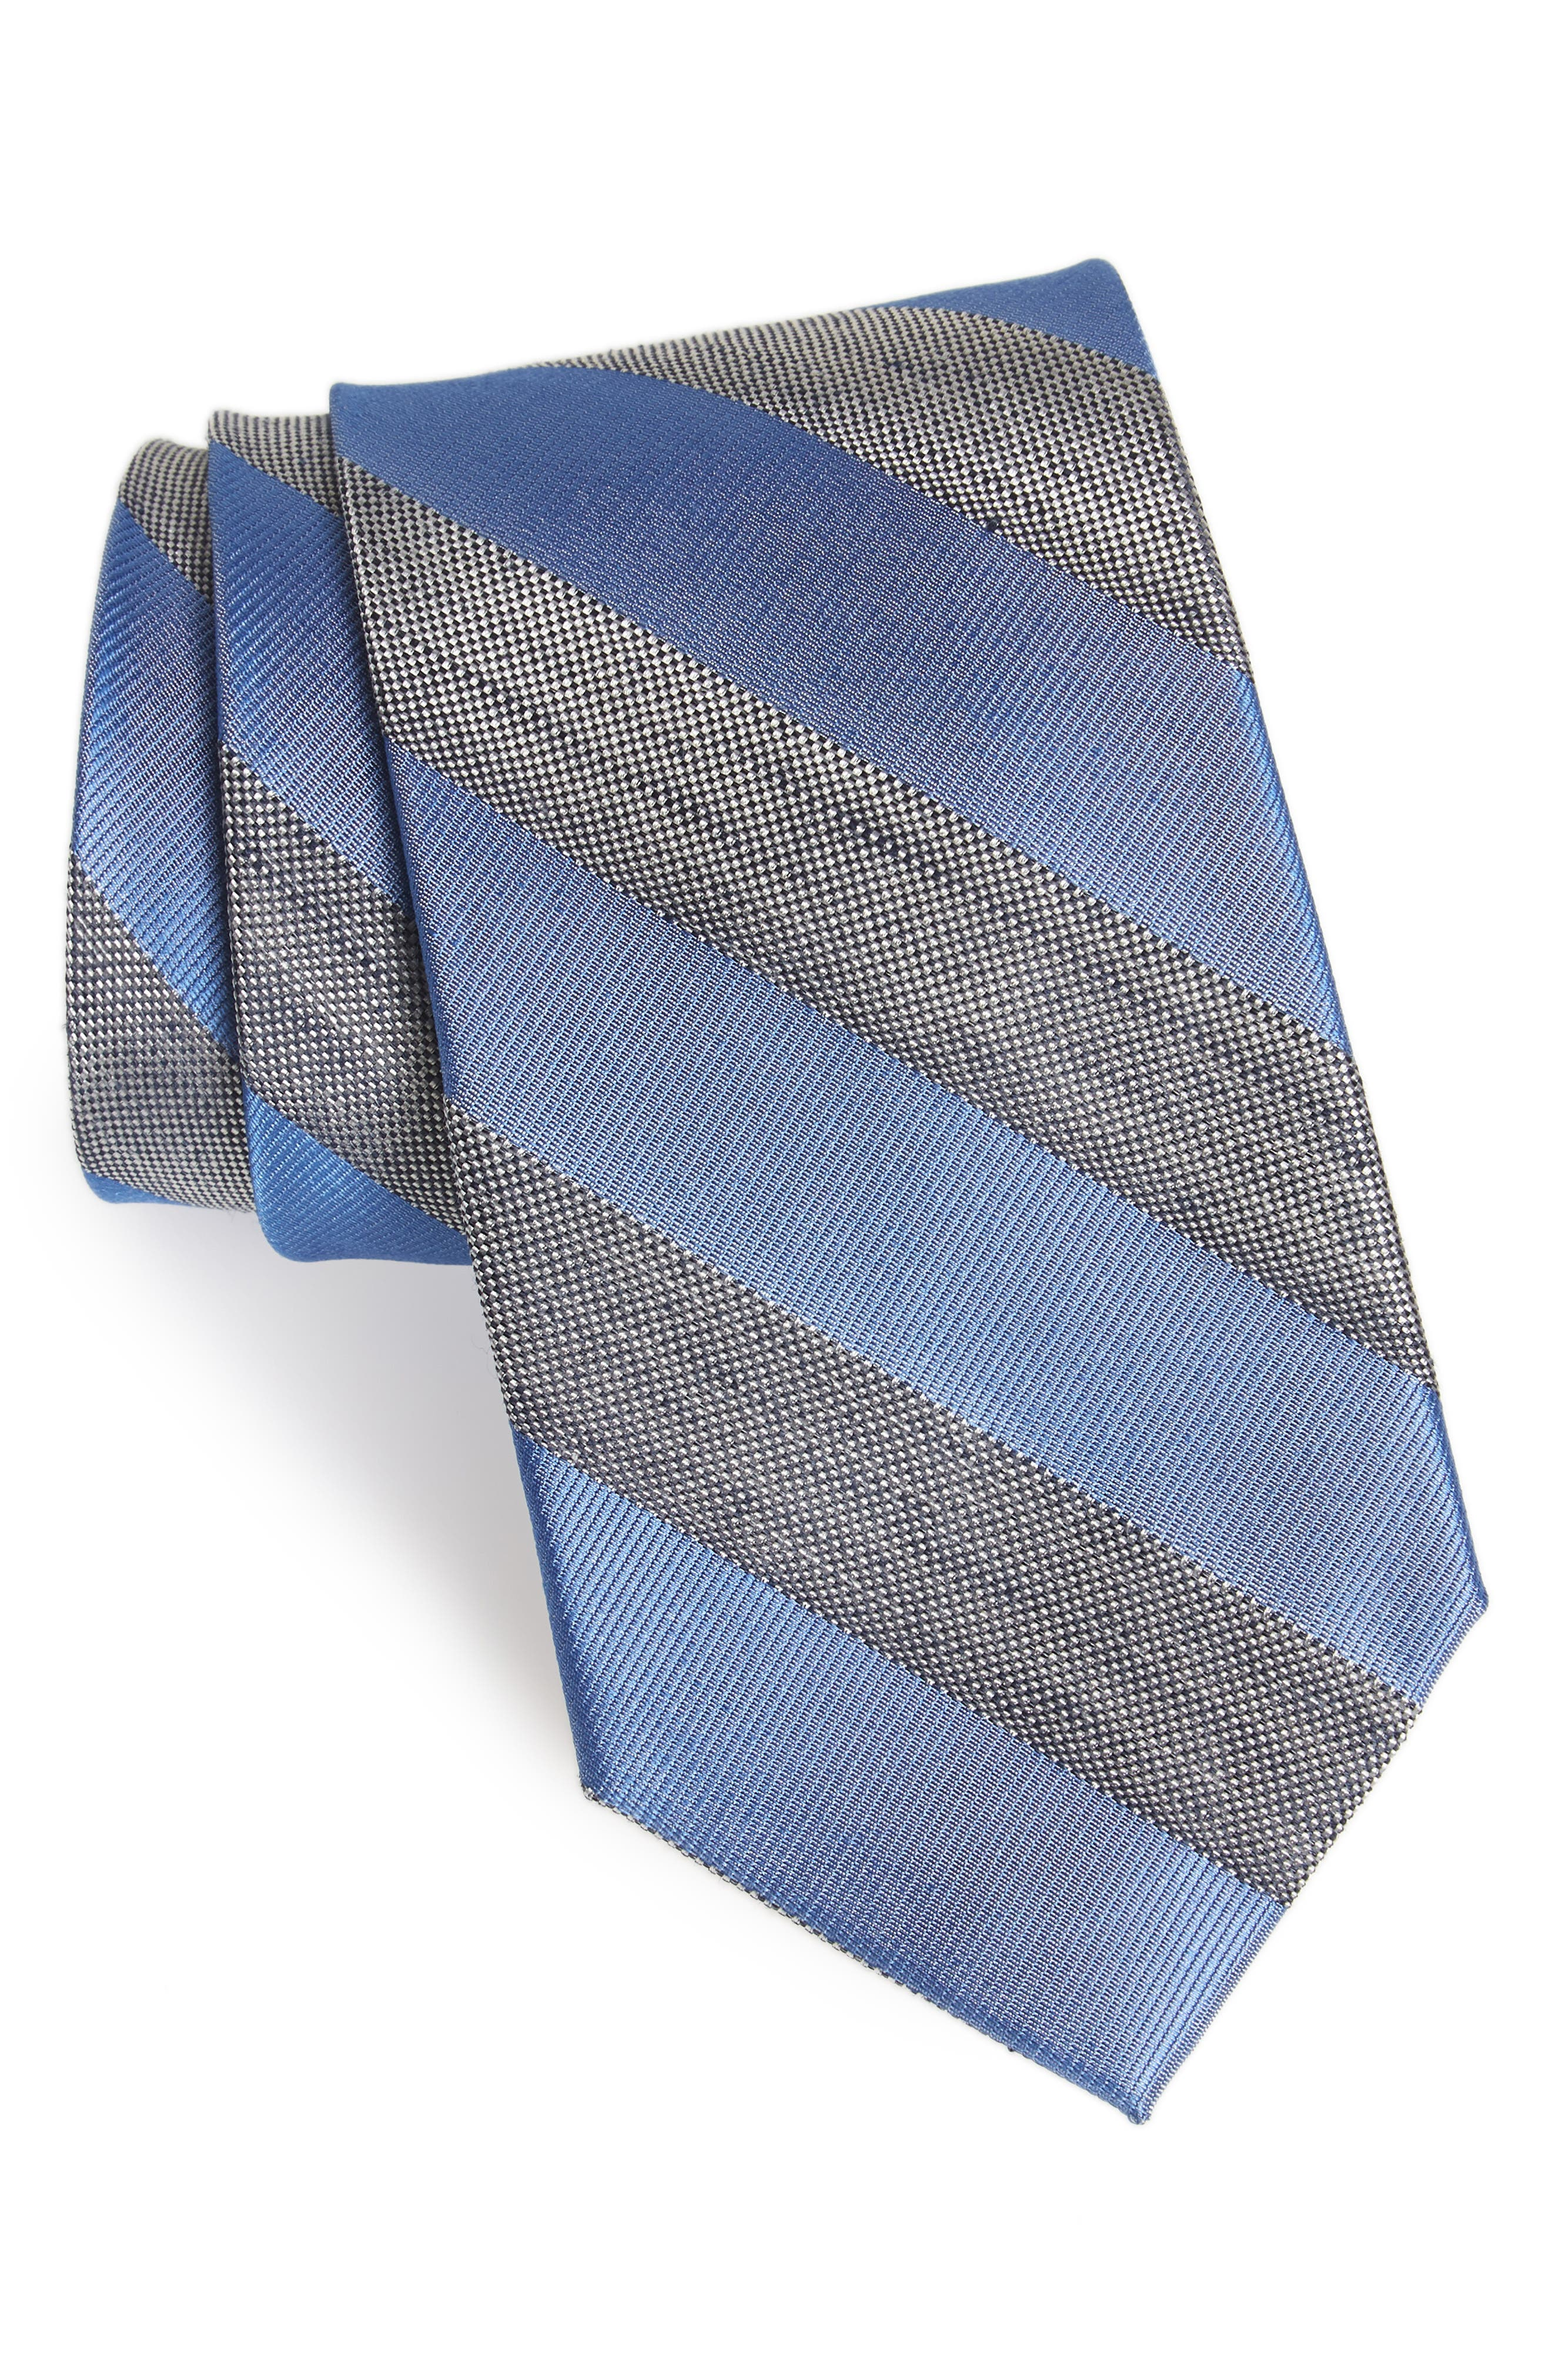 Bomer Stripe Silk & Linen Tie,                             Main thumbnail 1, color,                             400